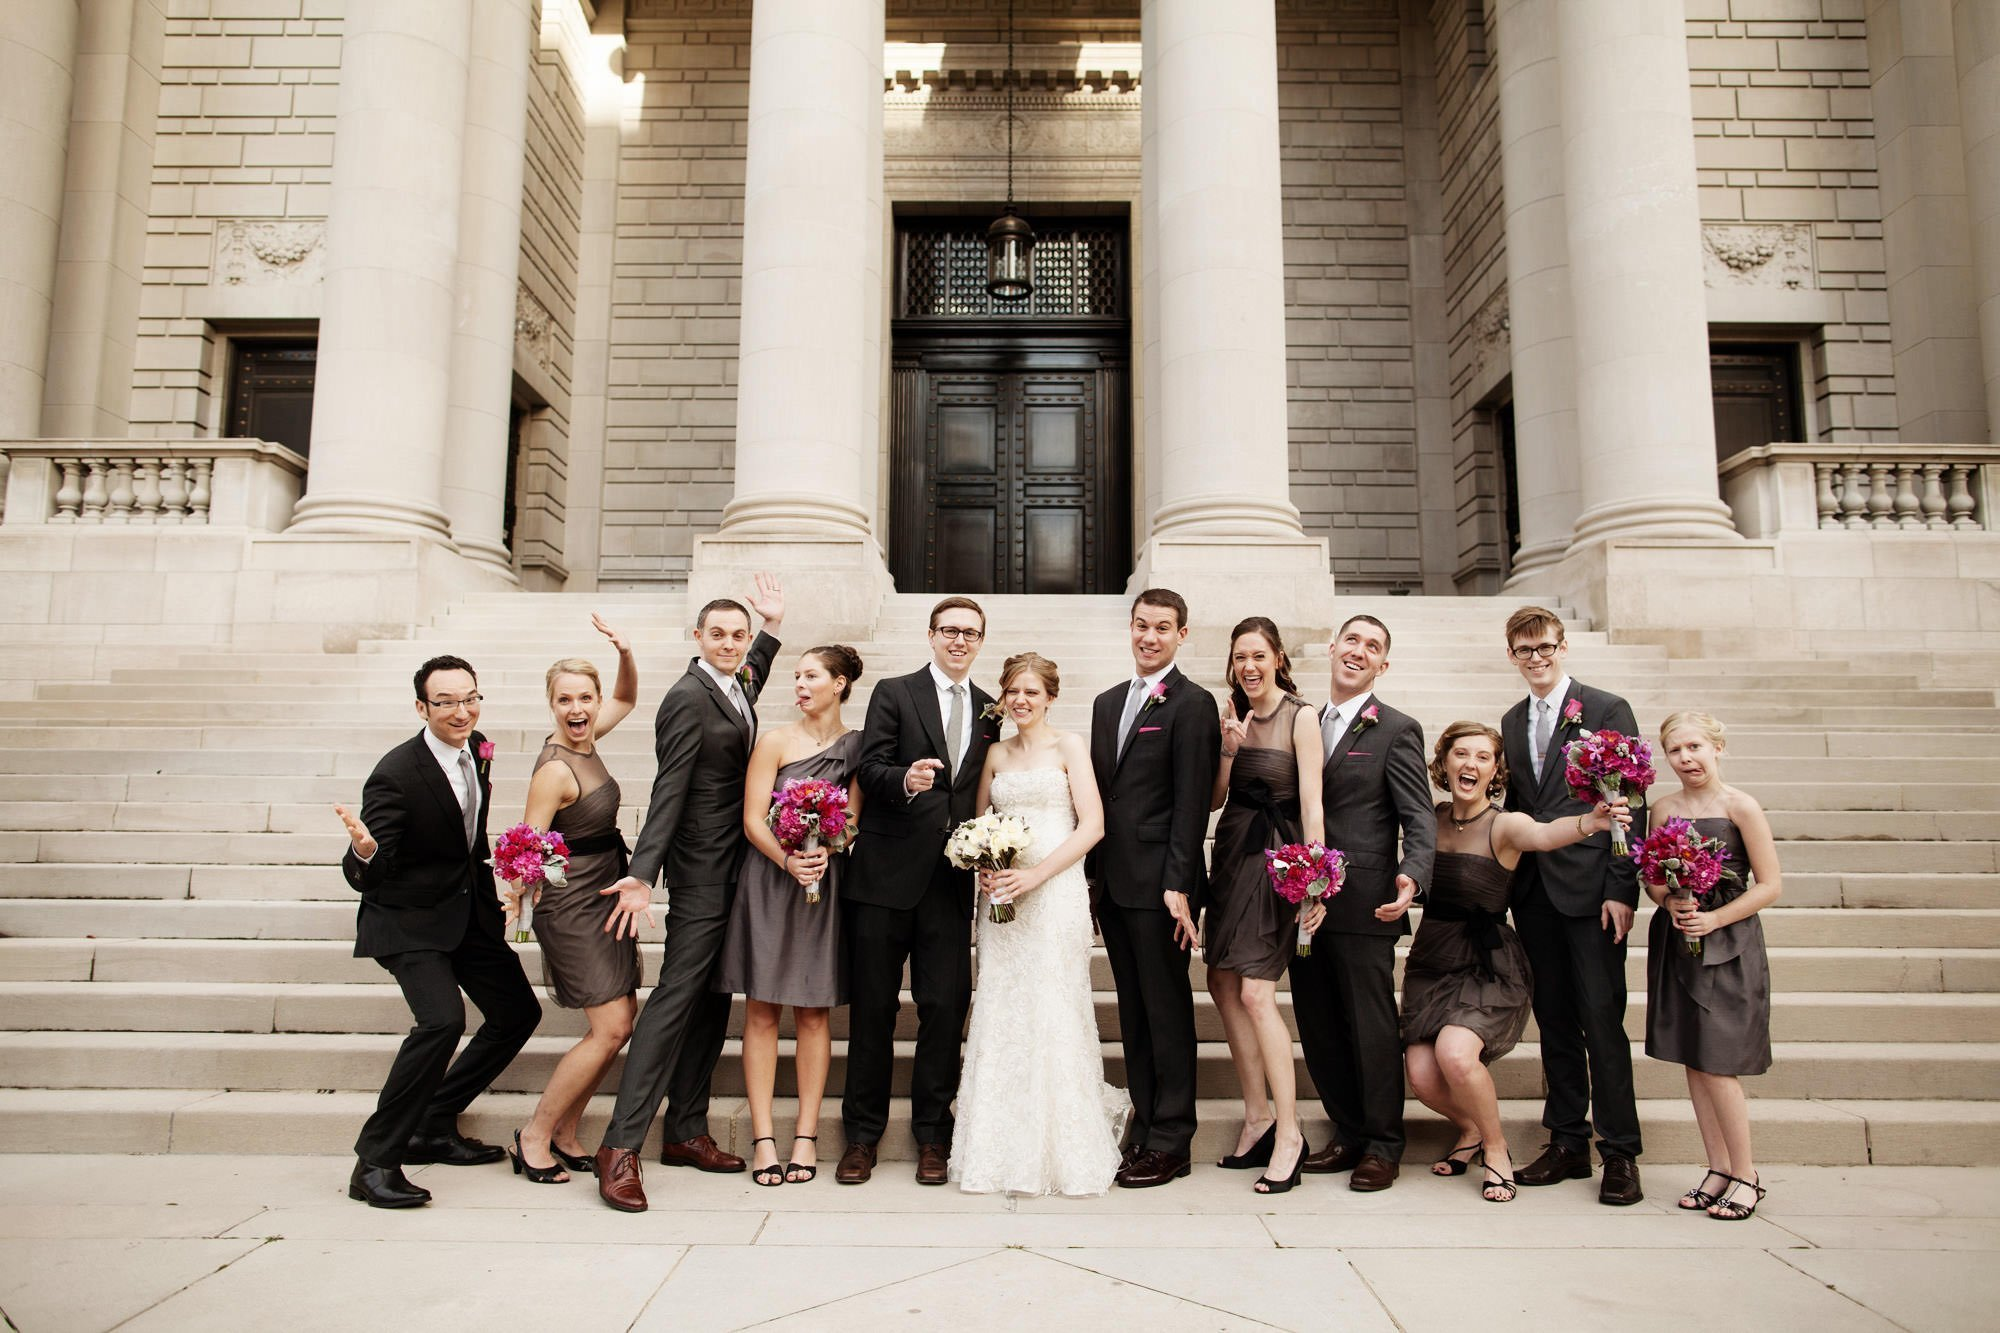 The wedding party poses for a portrait on the steps of the Carnegie Institute for Science.